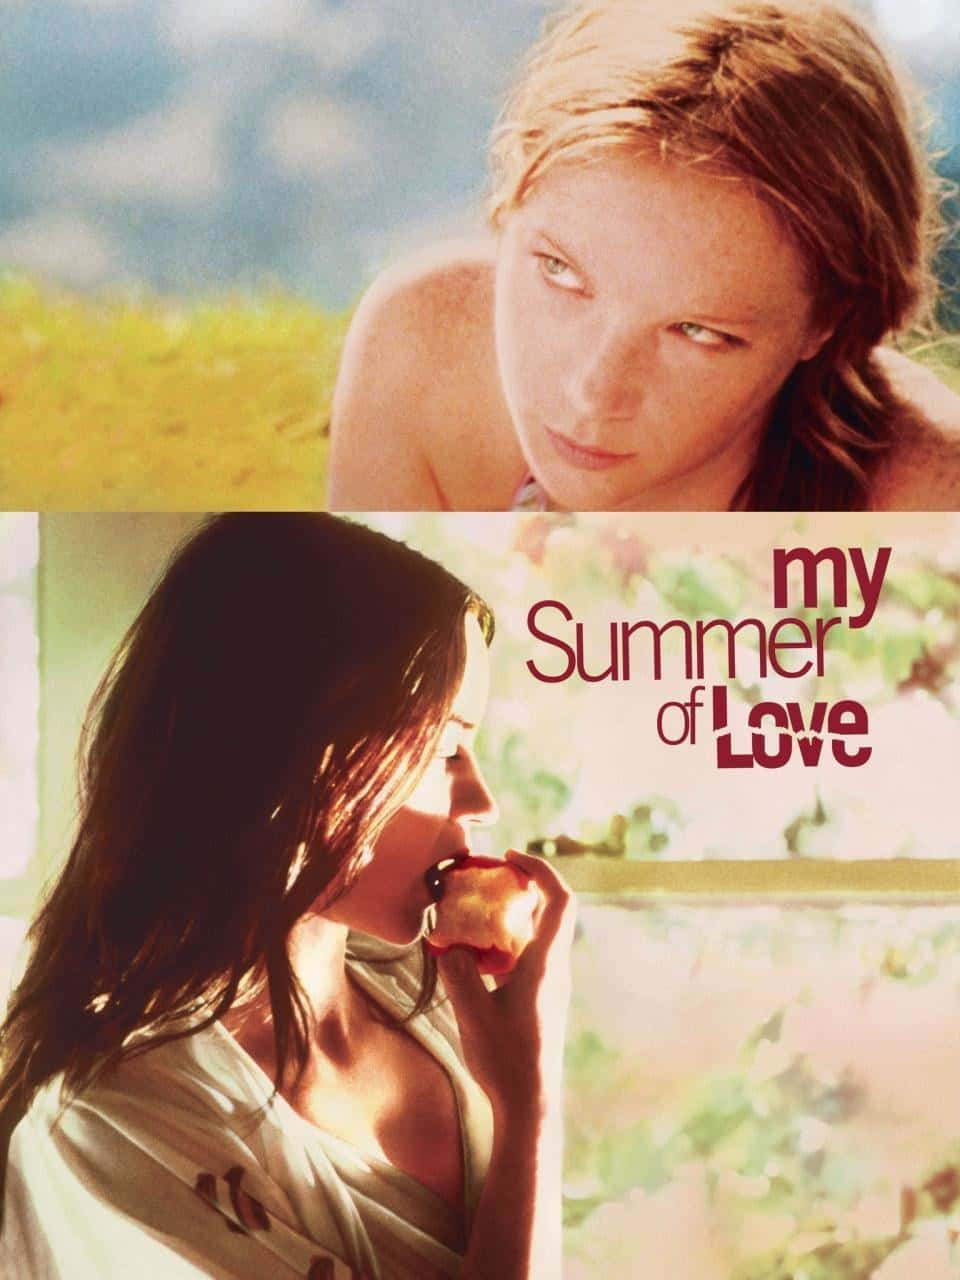 My Summer of Love, 2004